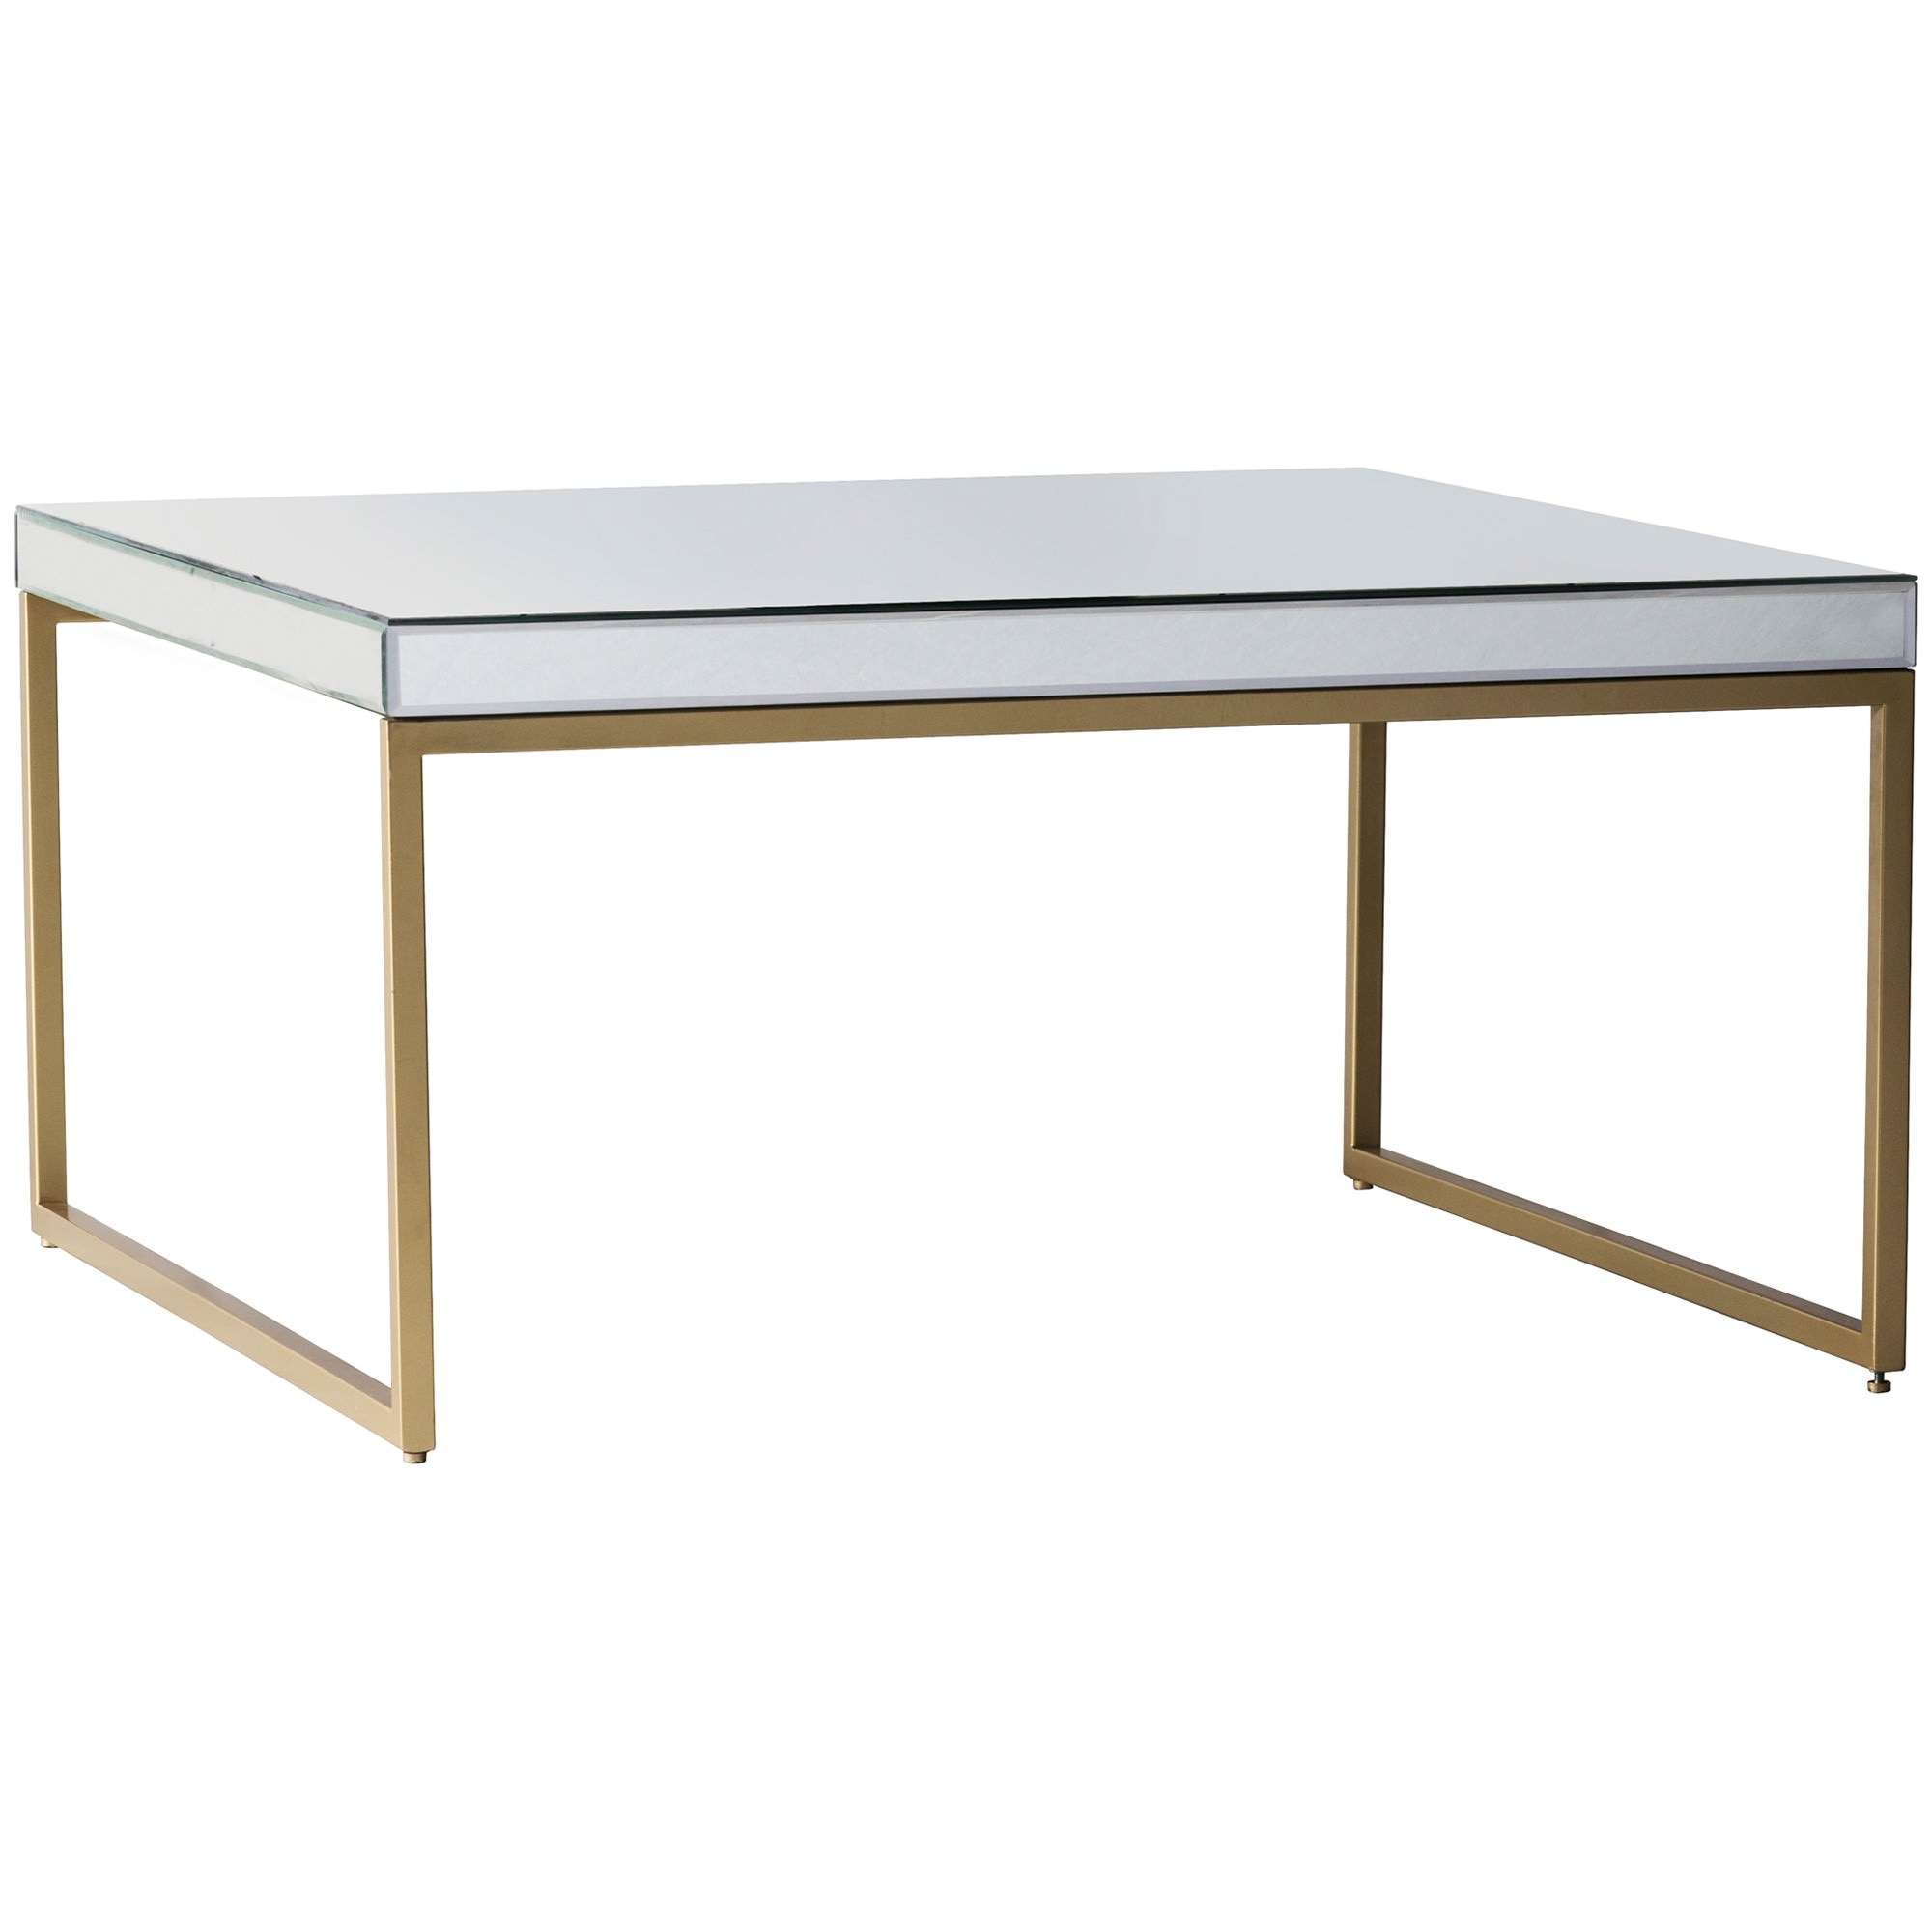 Champagne Mirrored Coffee Table: Parker Mirror & Metal Coffee Table, 60cm, Champagne